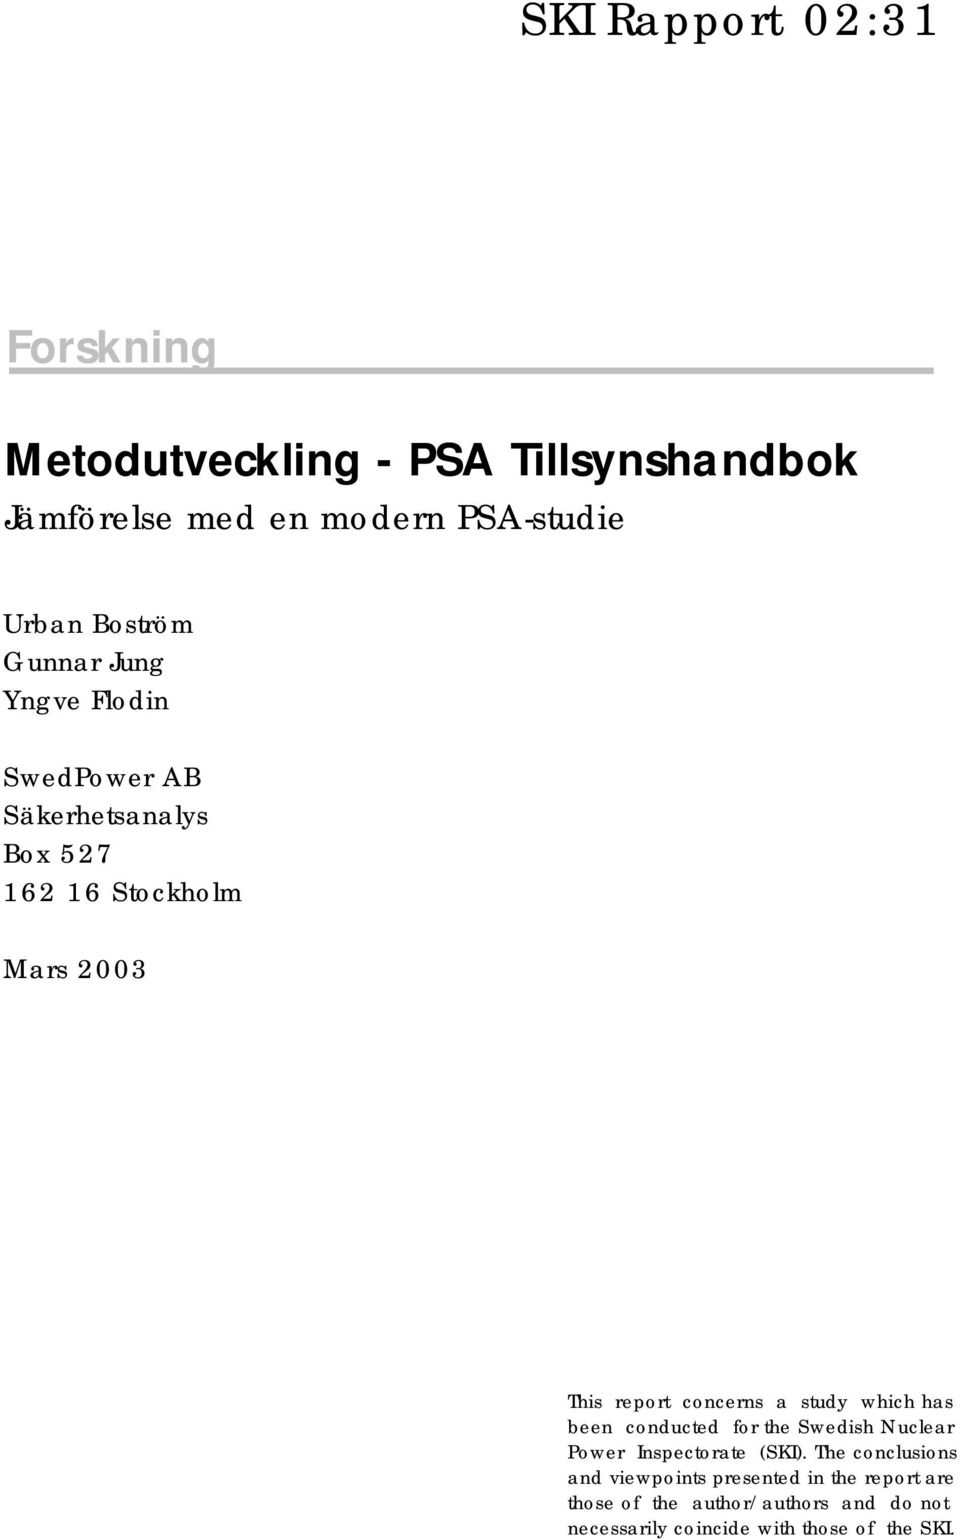 report concerns a study which has been conducted for the Swedish Nuclear Power Inspectorate (SKI).